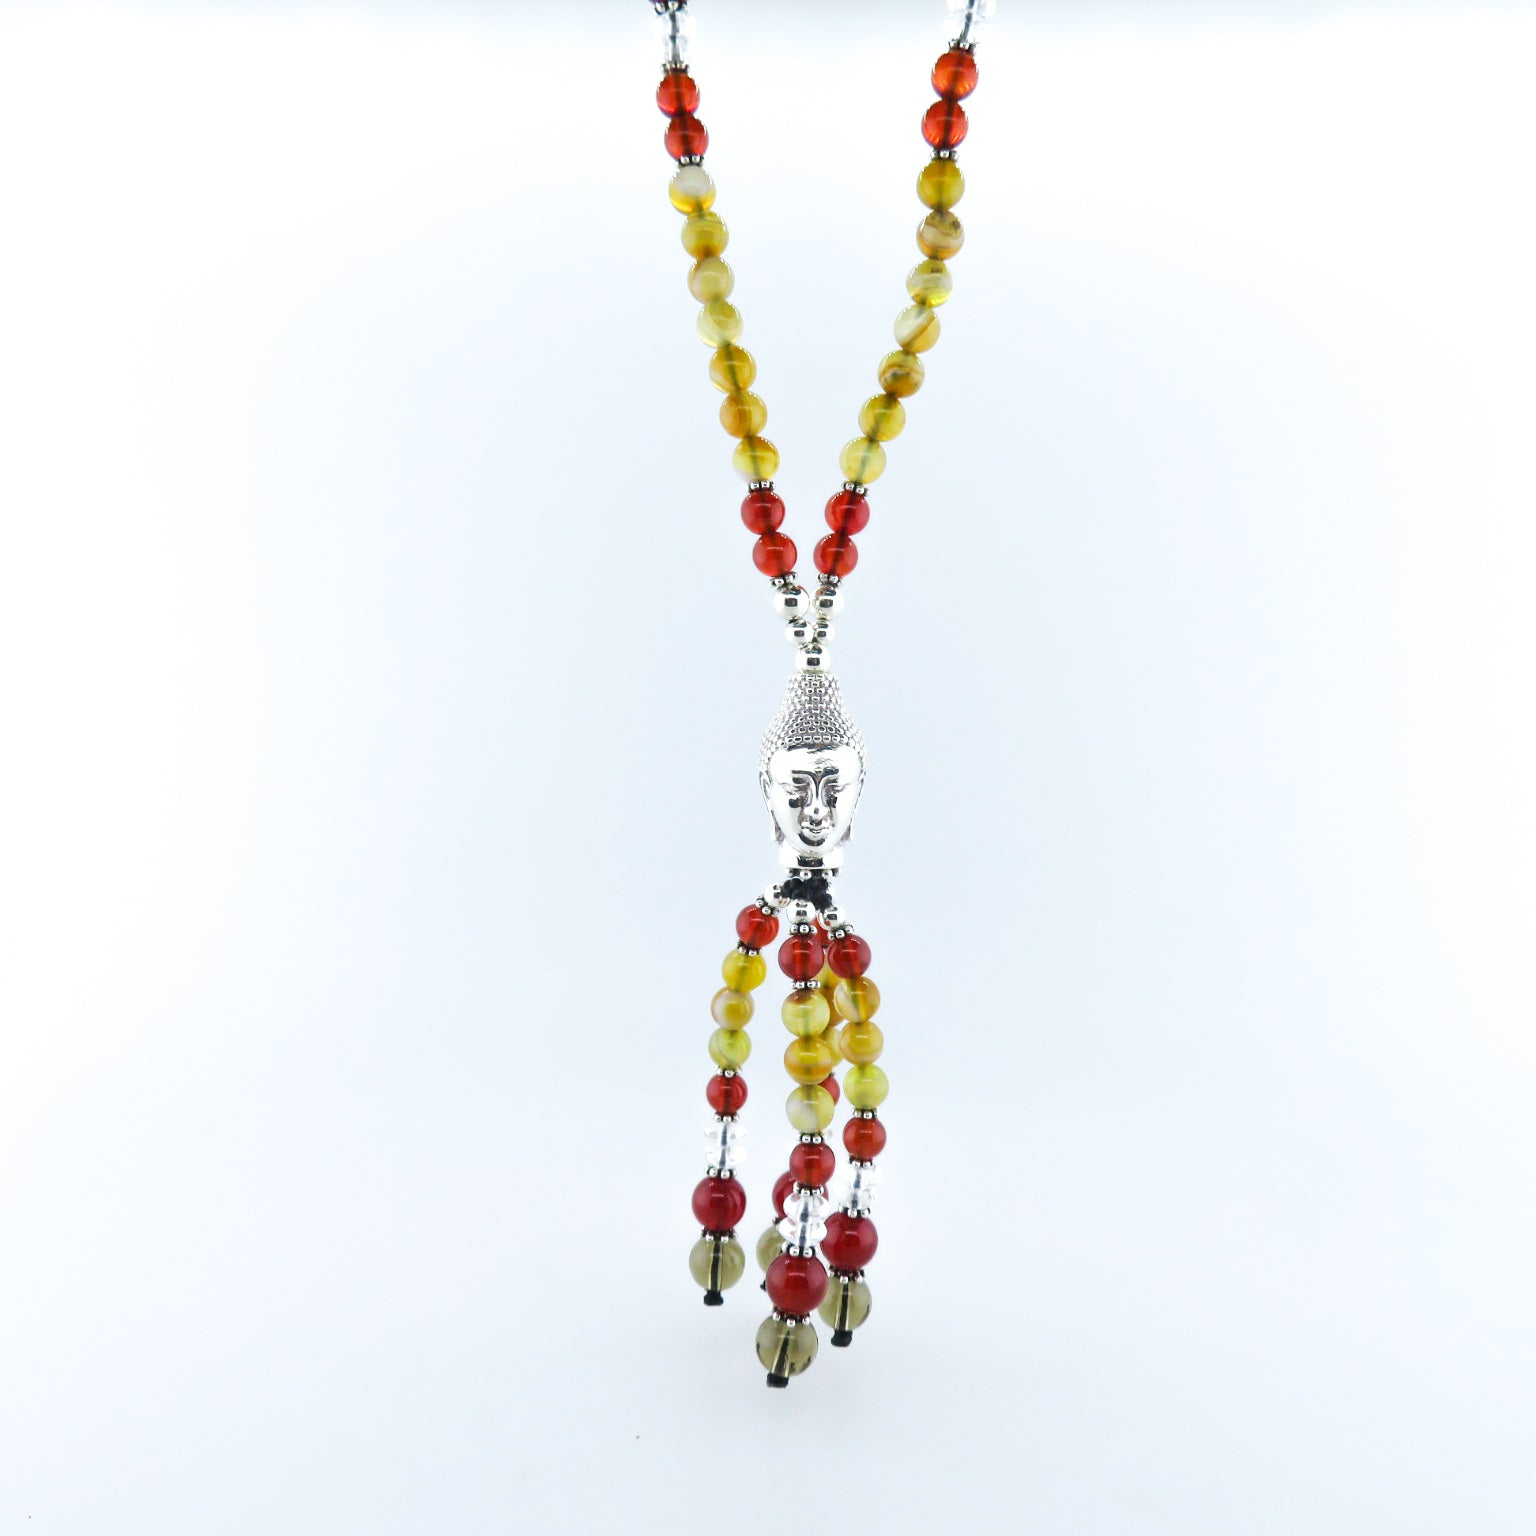 Agate Beads Necklace with Silver Buddha Head, Carnelian, Crystal, Smokey Quartz and Silver Beads